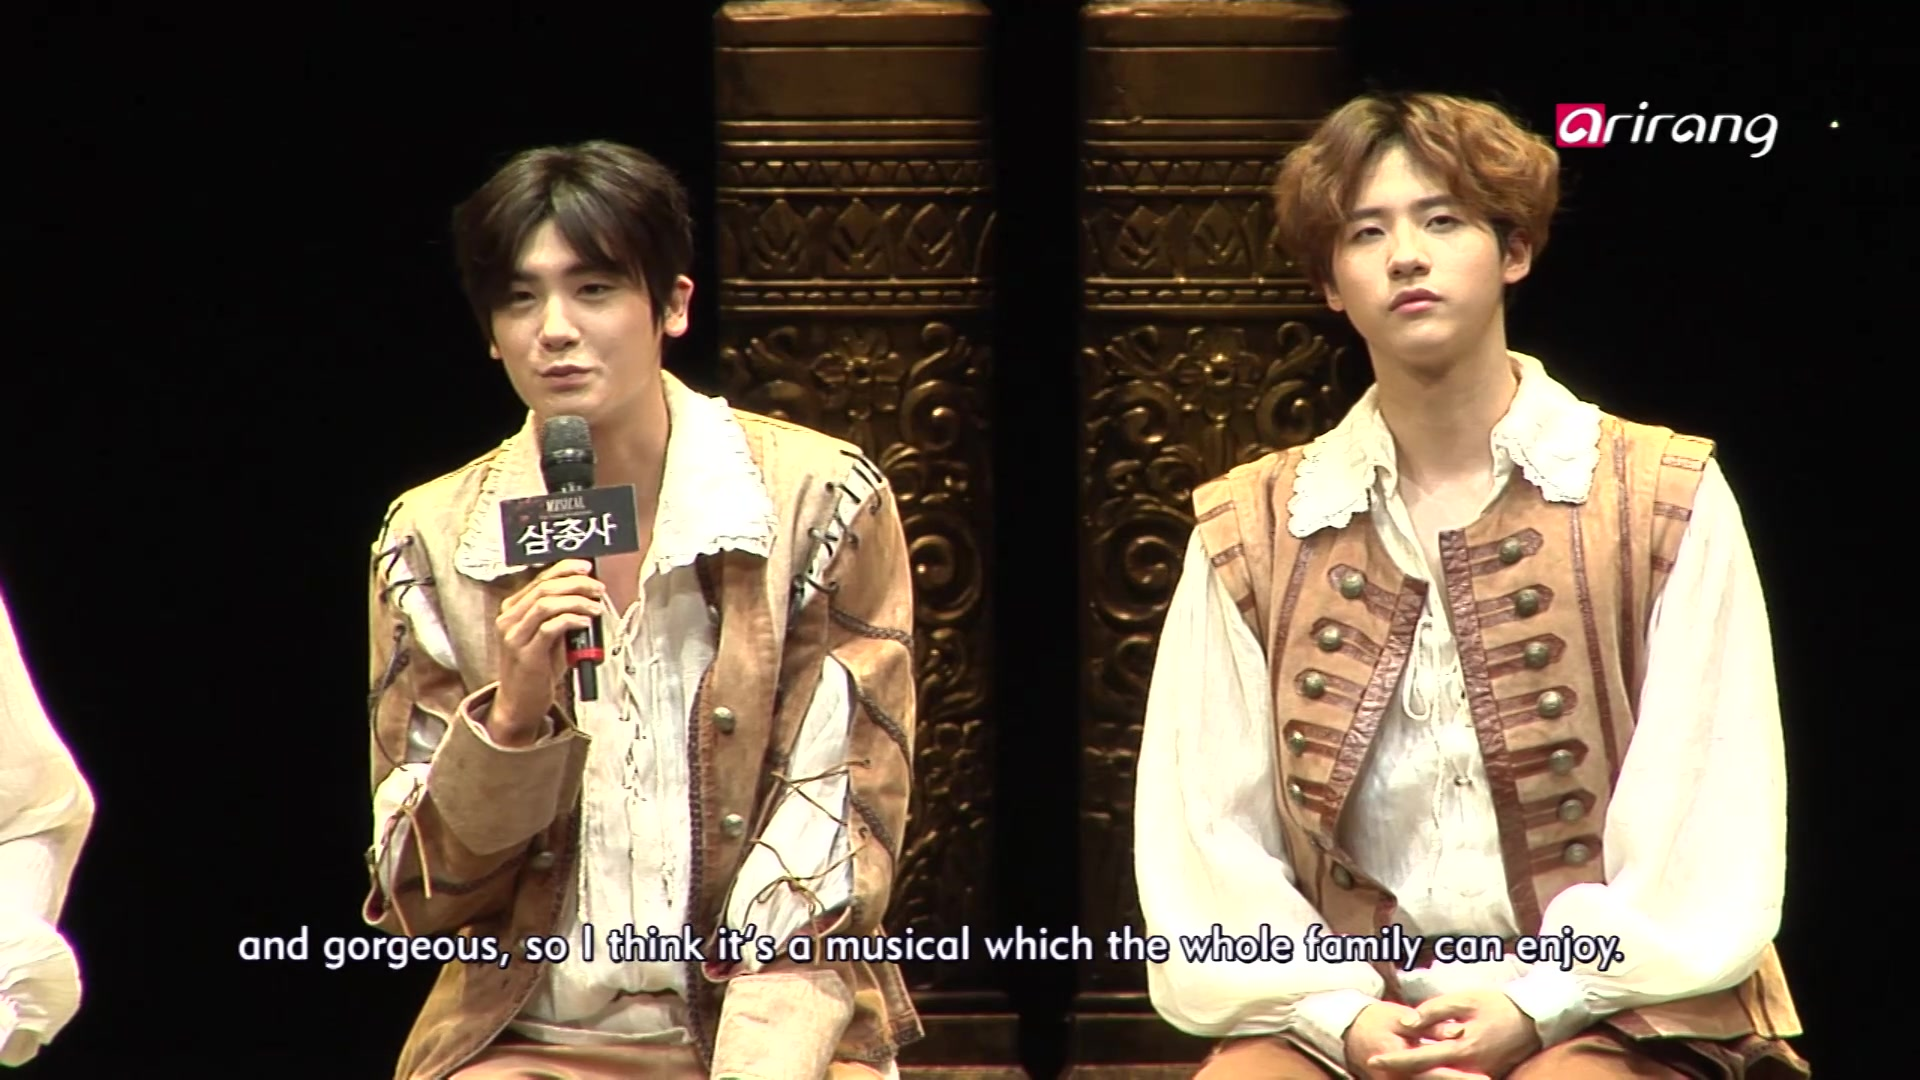 'The Three Musketeers' Press Conference